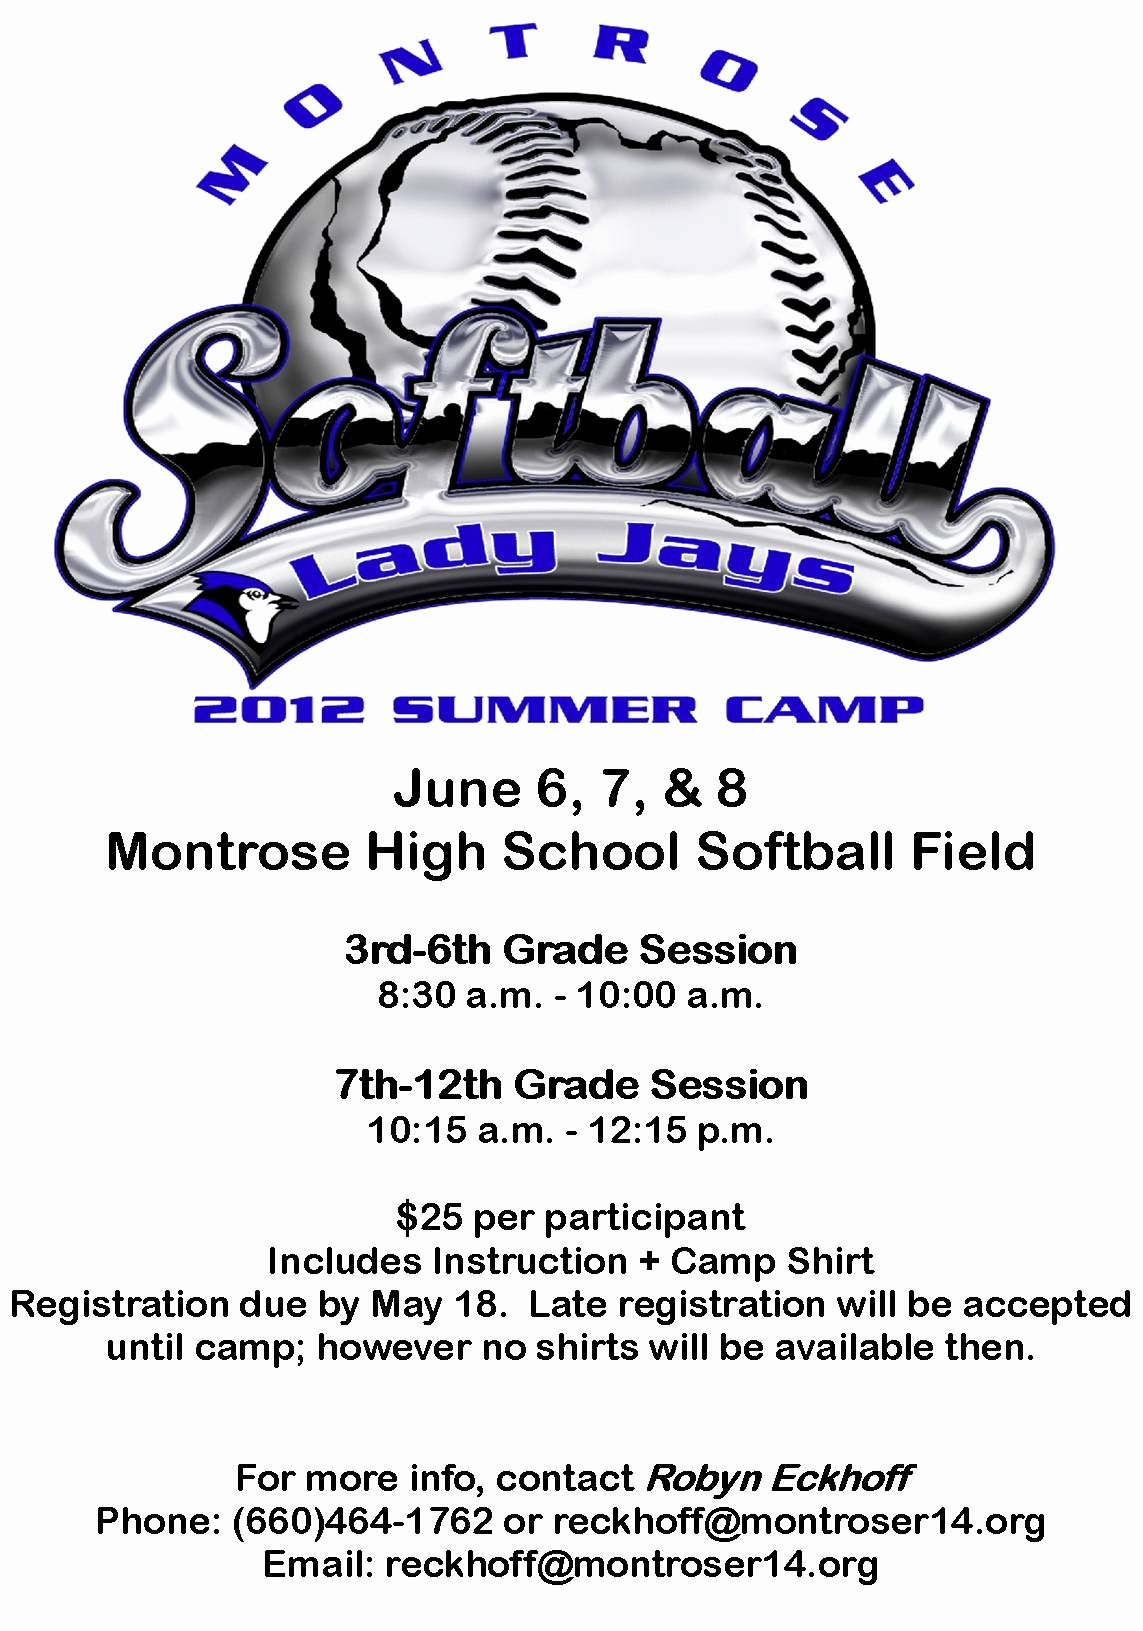 Free Summer Camp Registration form Template Beautiful Montrose R 14 Schools Summer softball Camp Ing In June